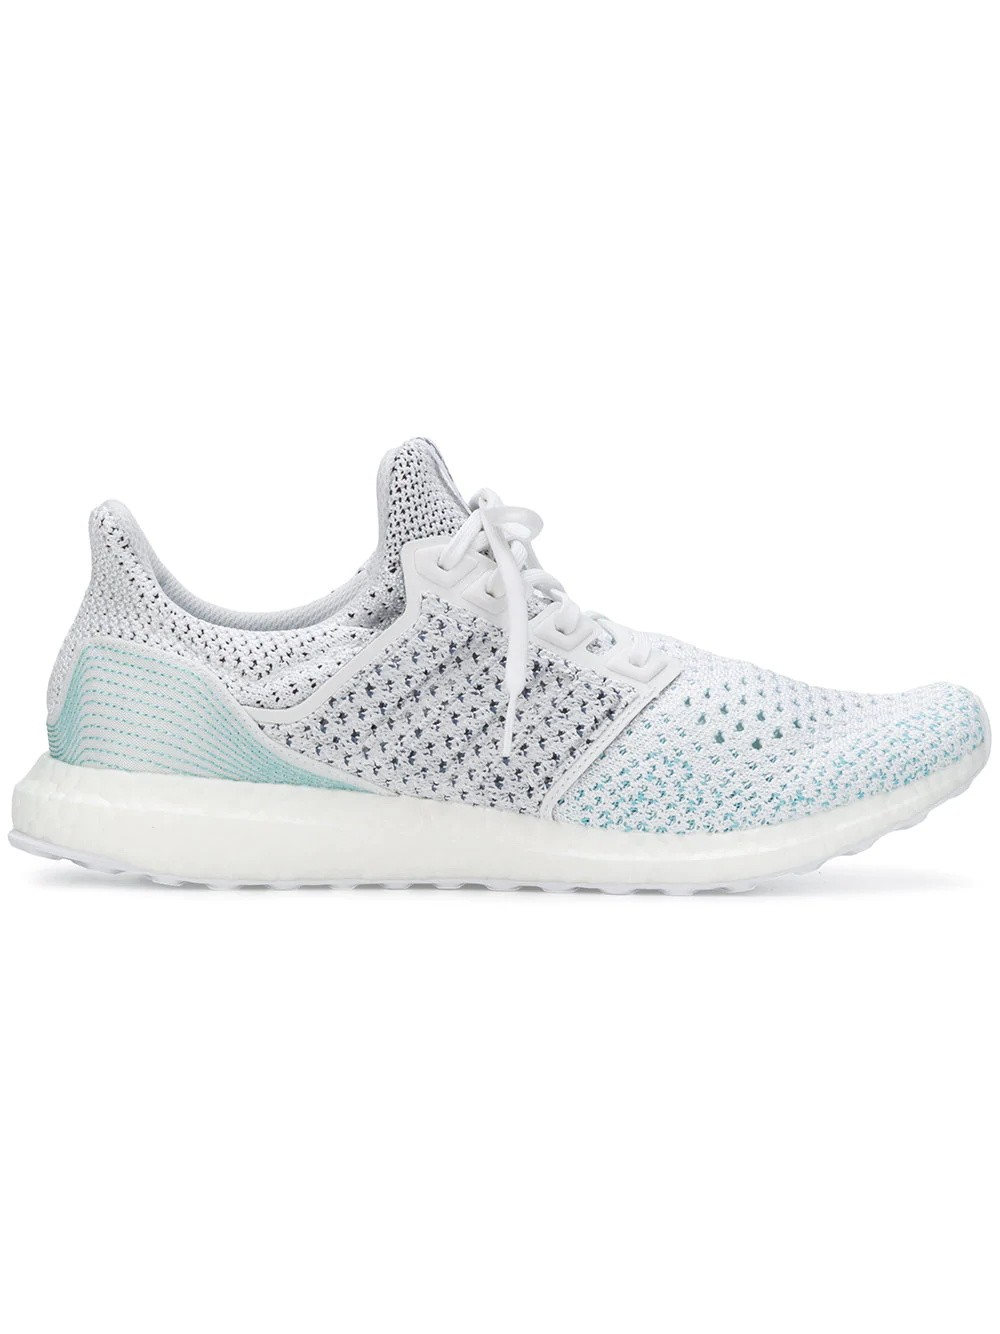 Adidas Ultraboost Parley Ltd 4.0 Blancas Blue Spirit BB7076